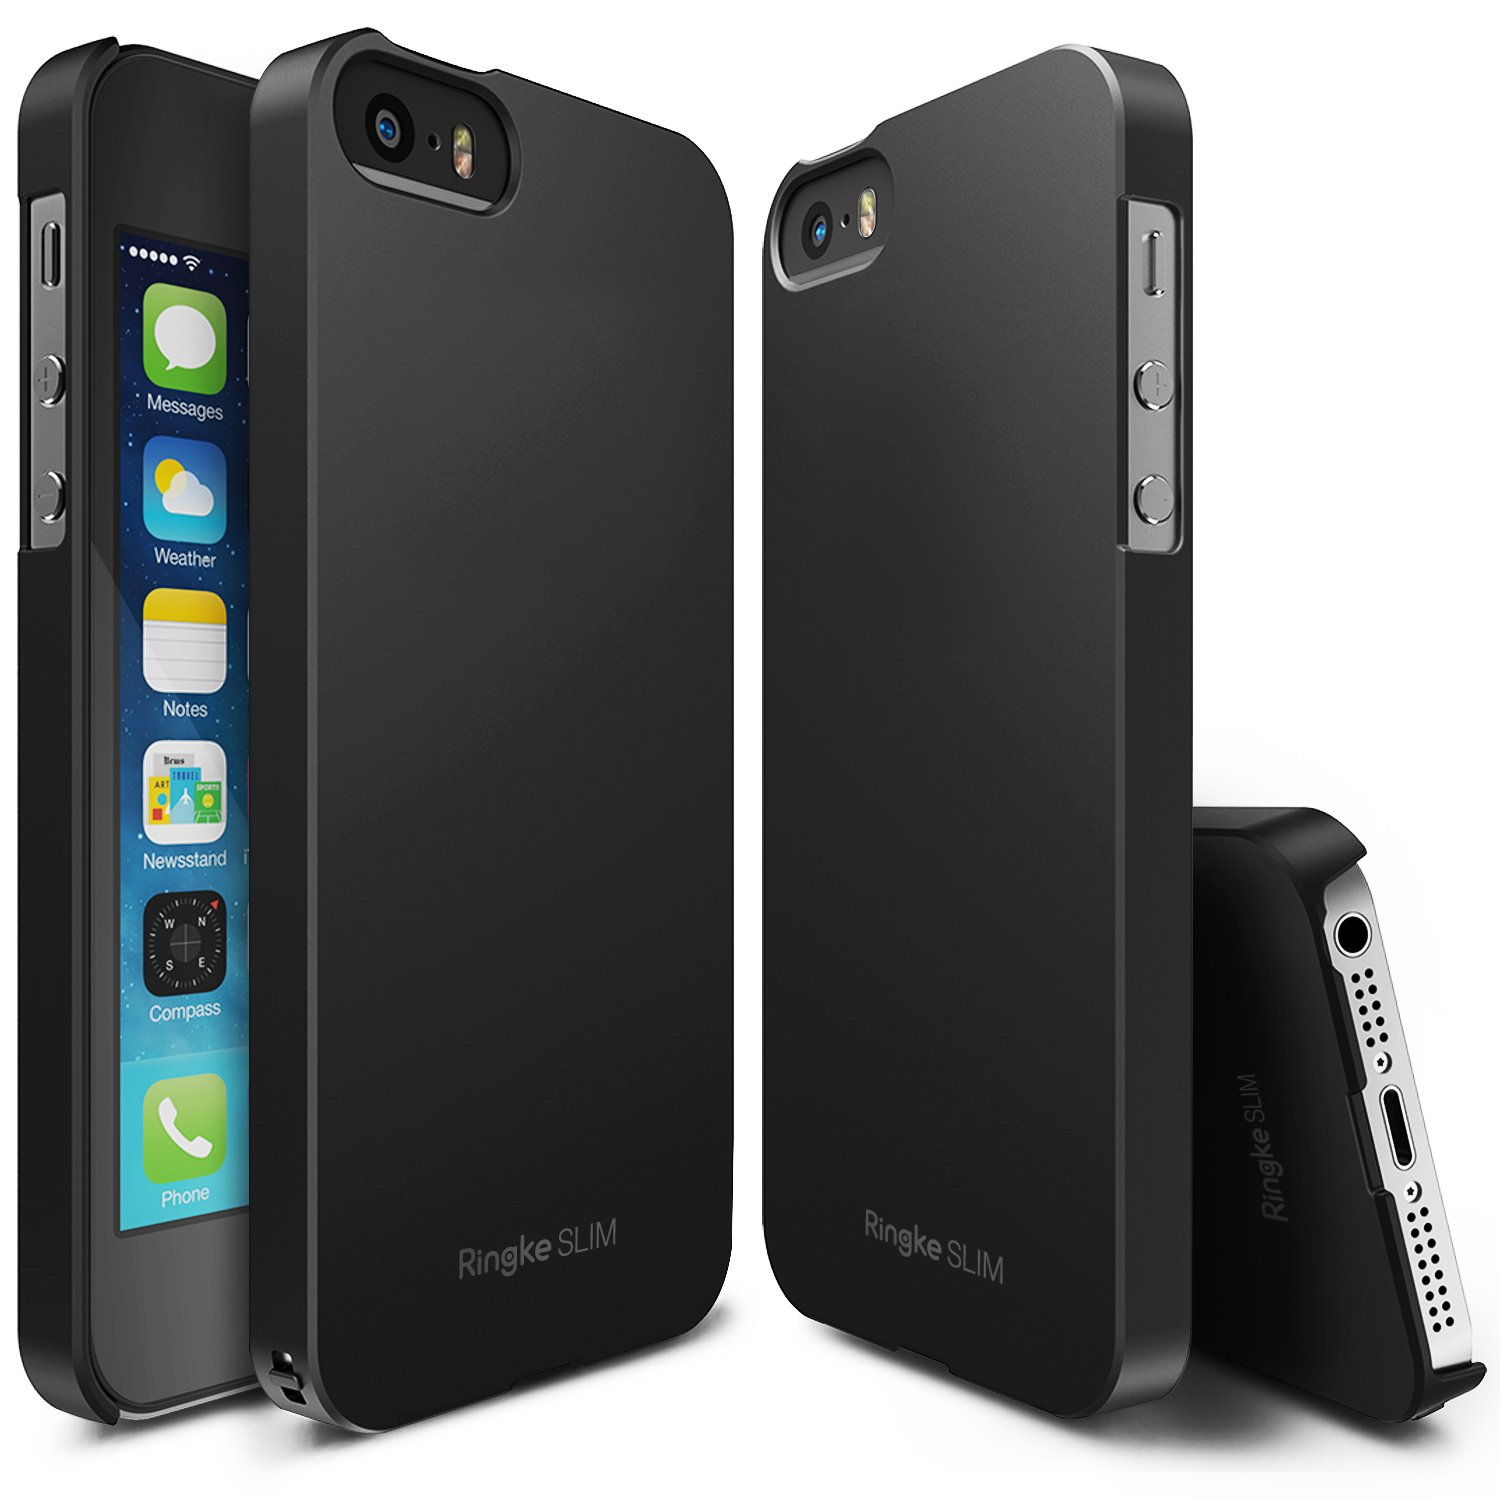 Iphone 5s 5 Case Rearth Ringke Slim Better Grip Premium Hard With Free